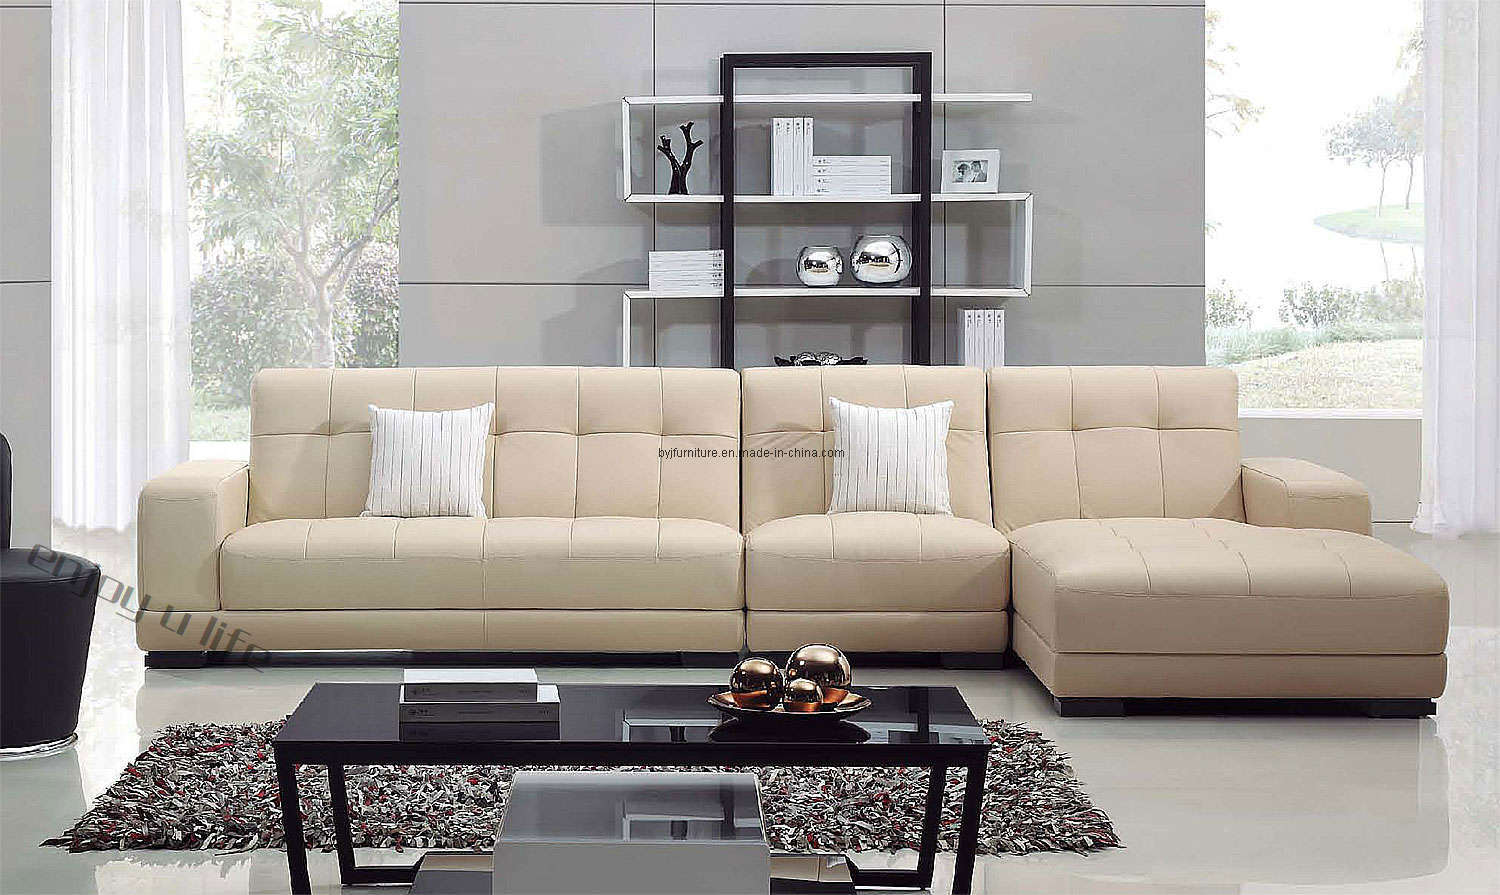 Sofas for living room 2017 grasscloth wallpaper - Pictures of living rooms with sectionals ...